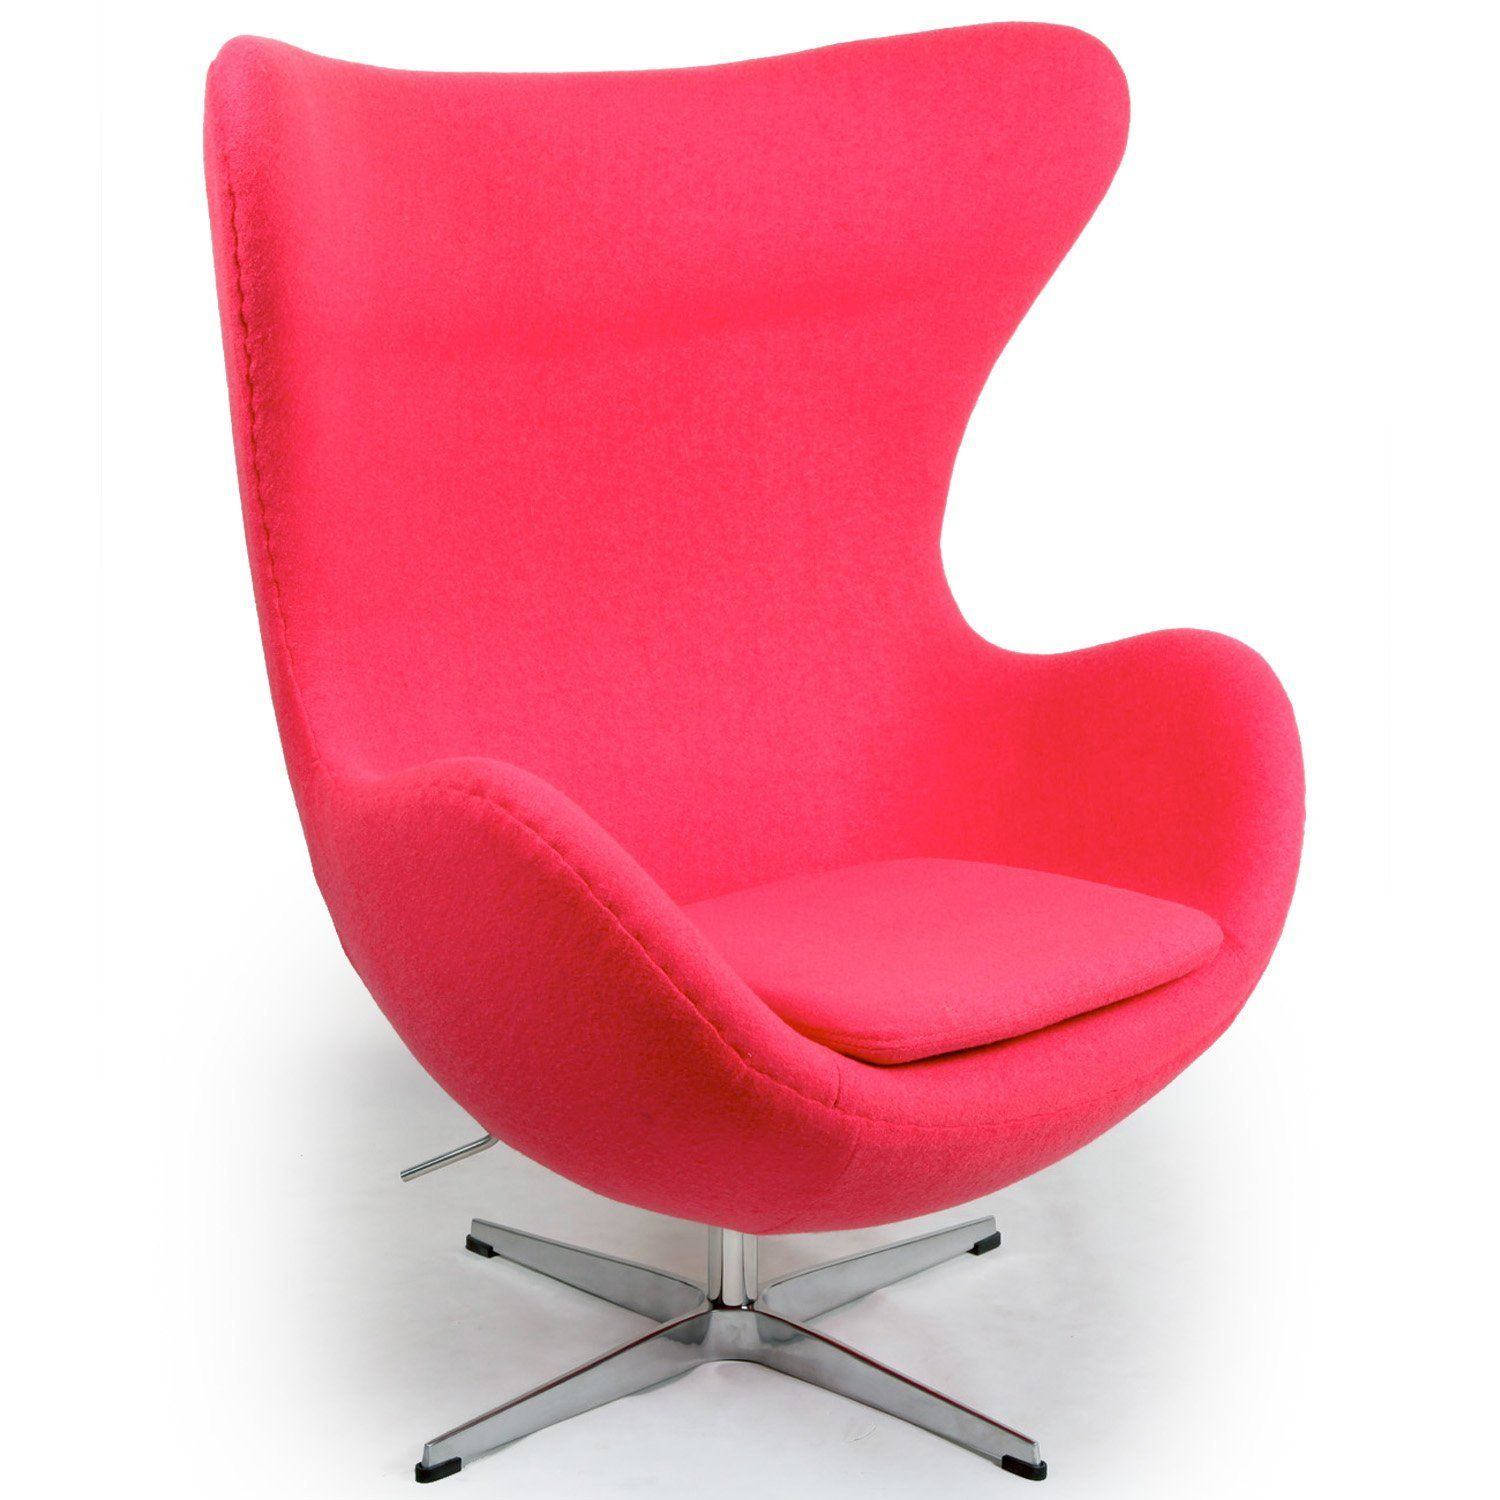 Colorful Desk Chairs for Teens ments